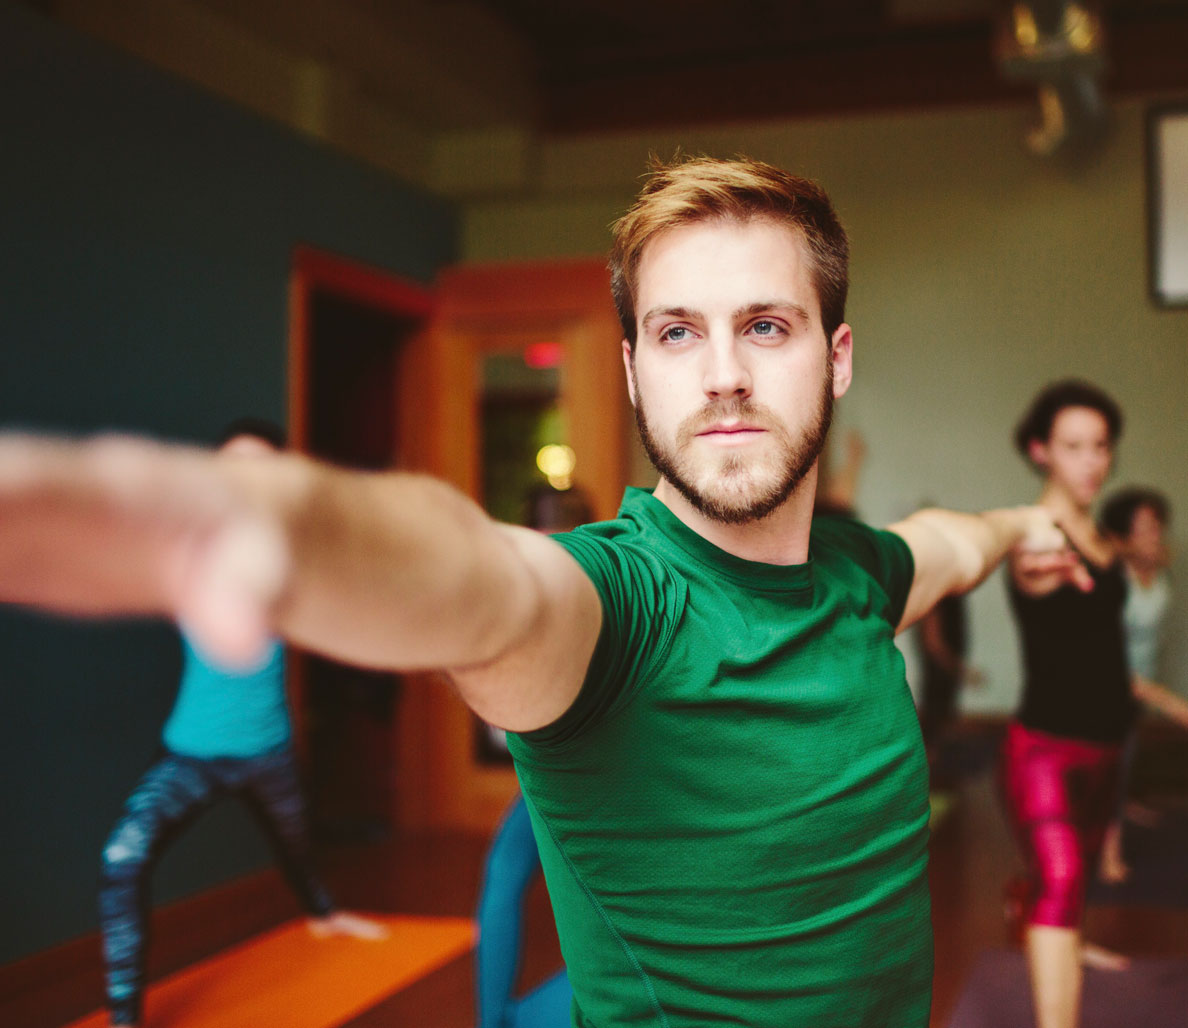 Yoga For Men Aka Broga Is The Next Fitness Class You